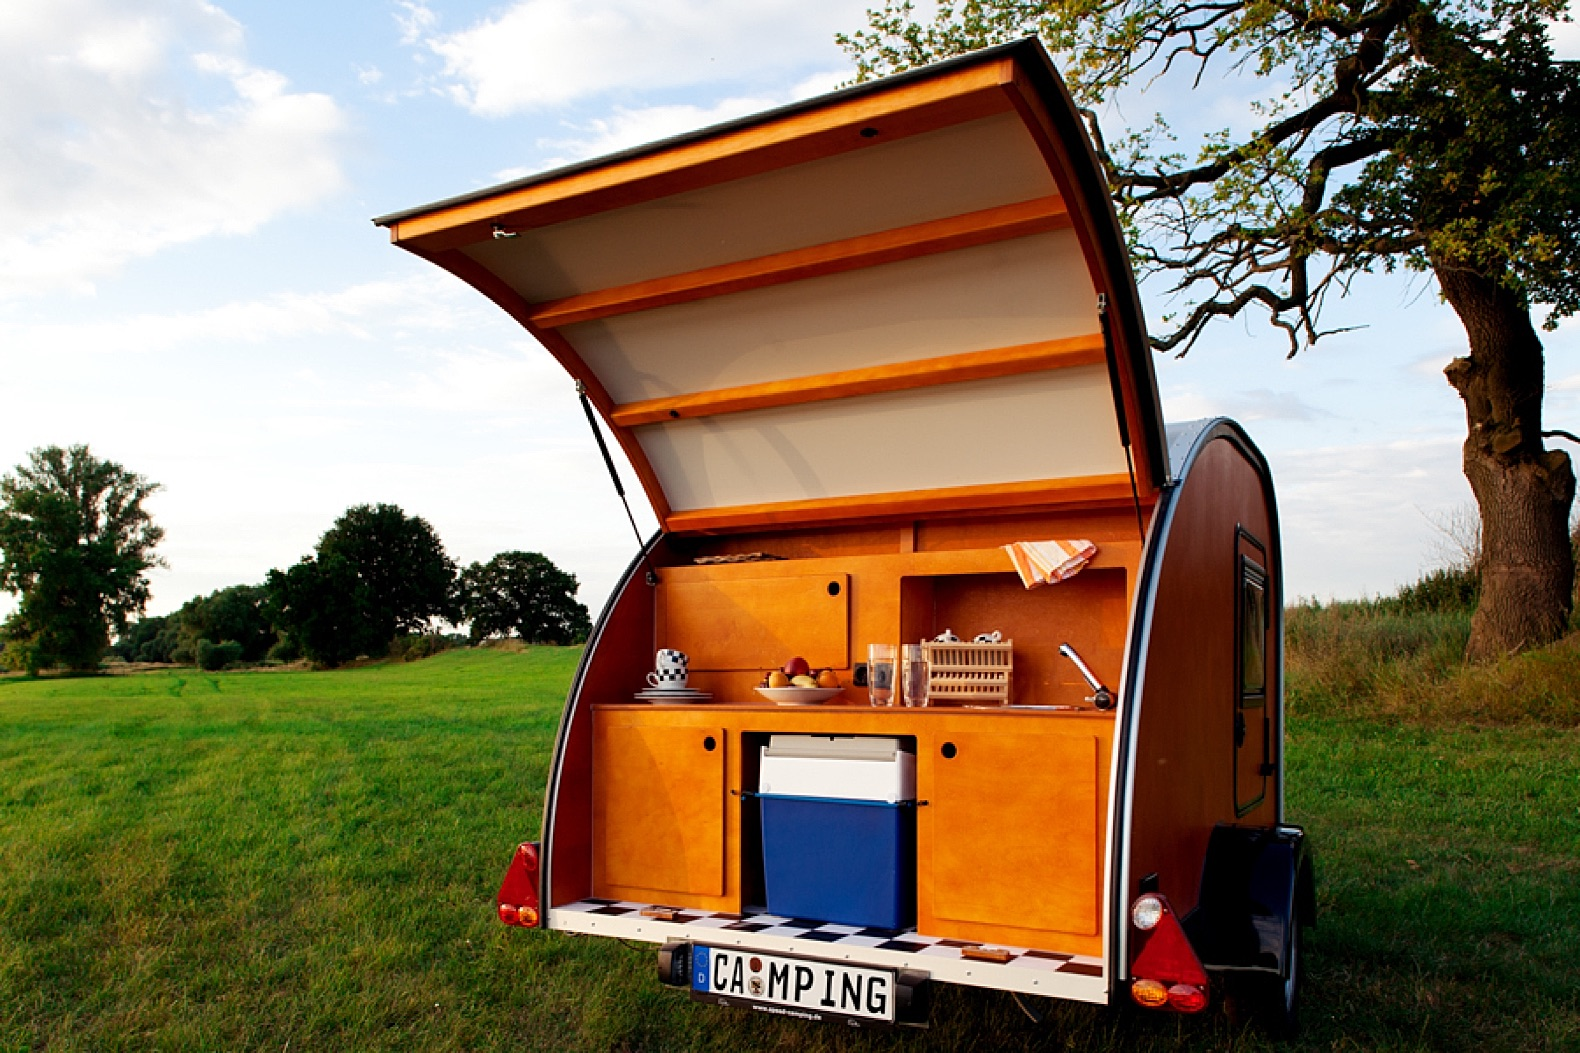 7 of the best tiny campers for a fabulous fall road trip 7 best tiny campers for a fall road trip inhabitat green design innovation architecture